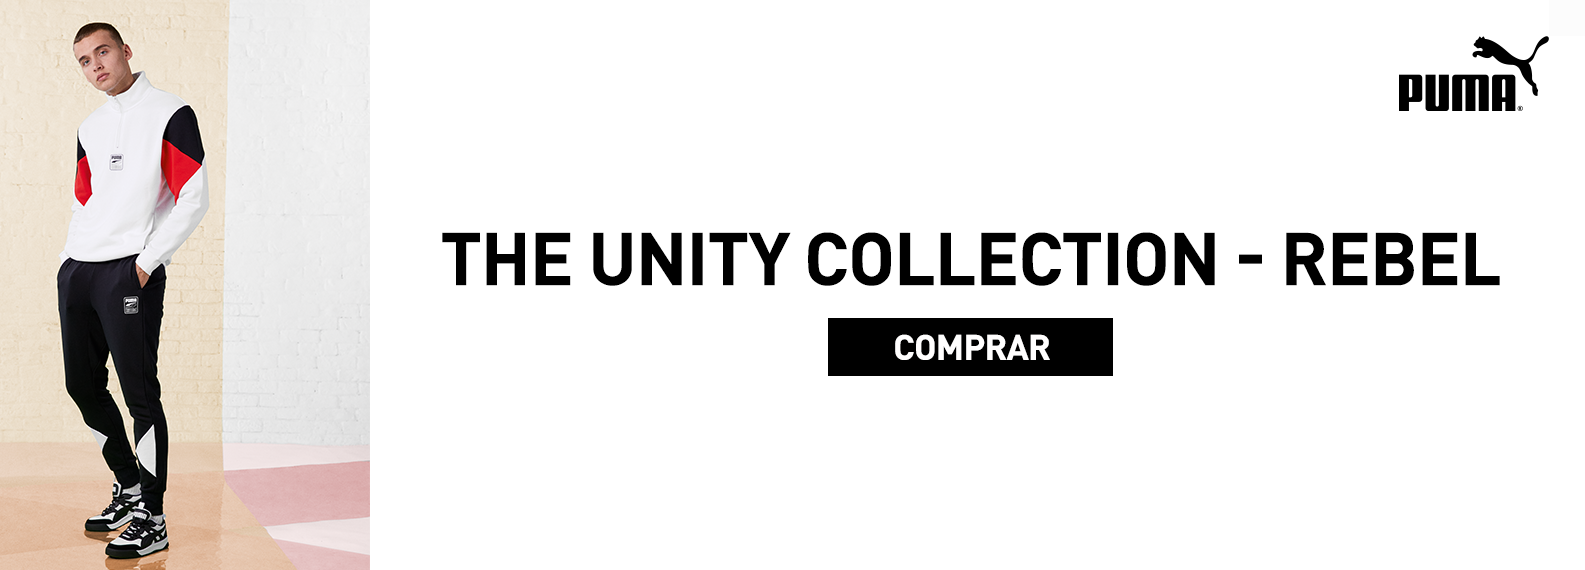 The Unity Collection REBEL